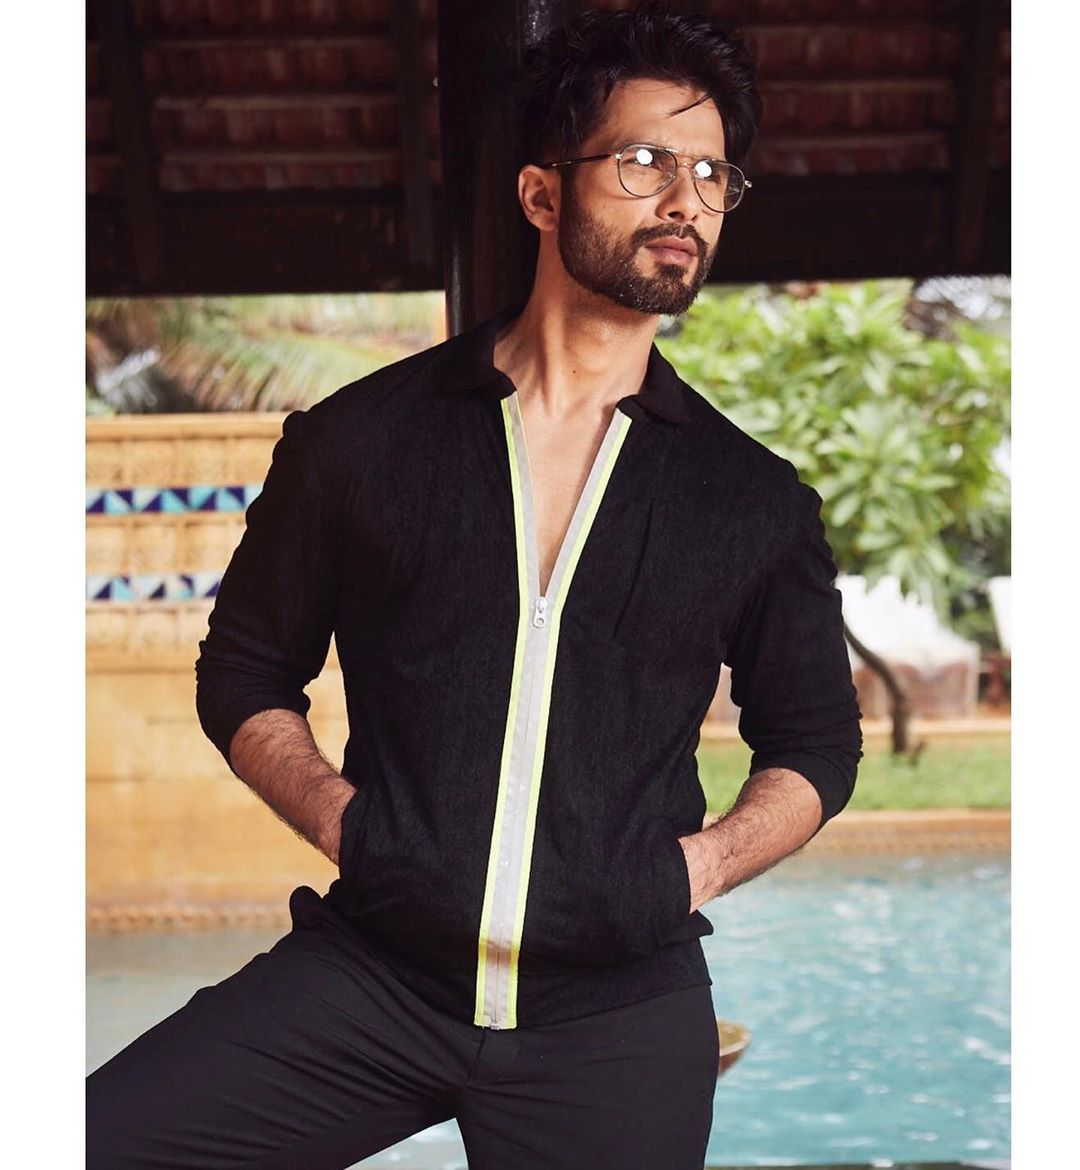 3-shahid-kapoor-latest-photo-instagram